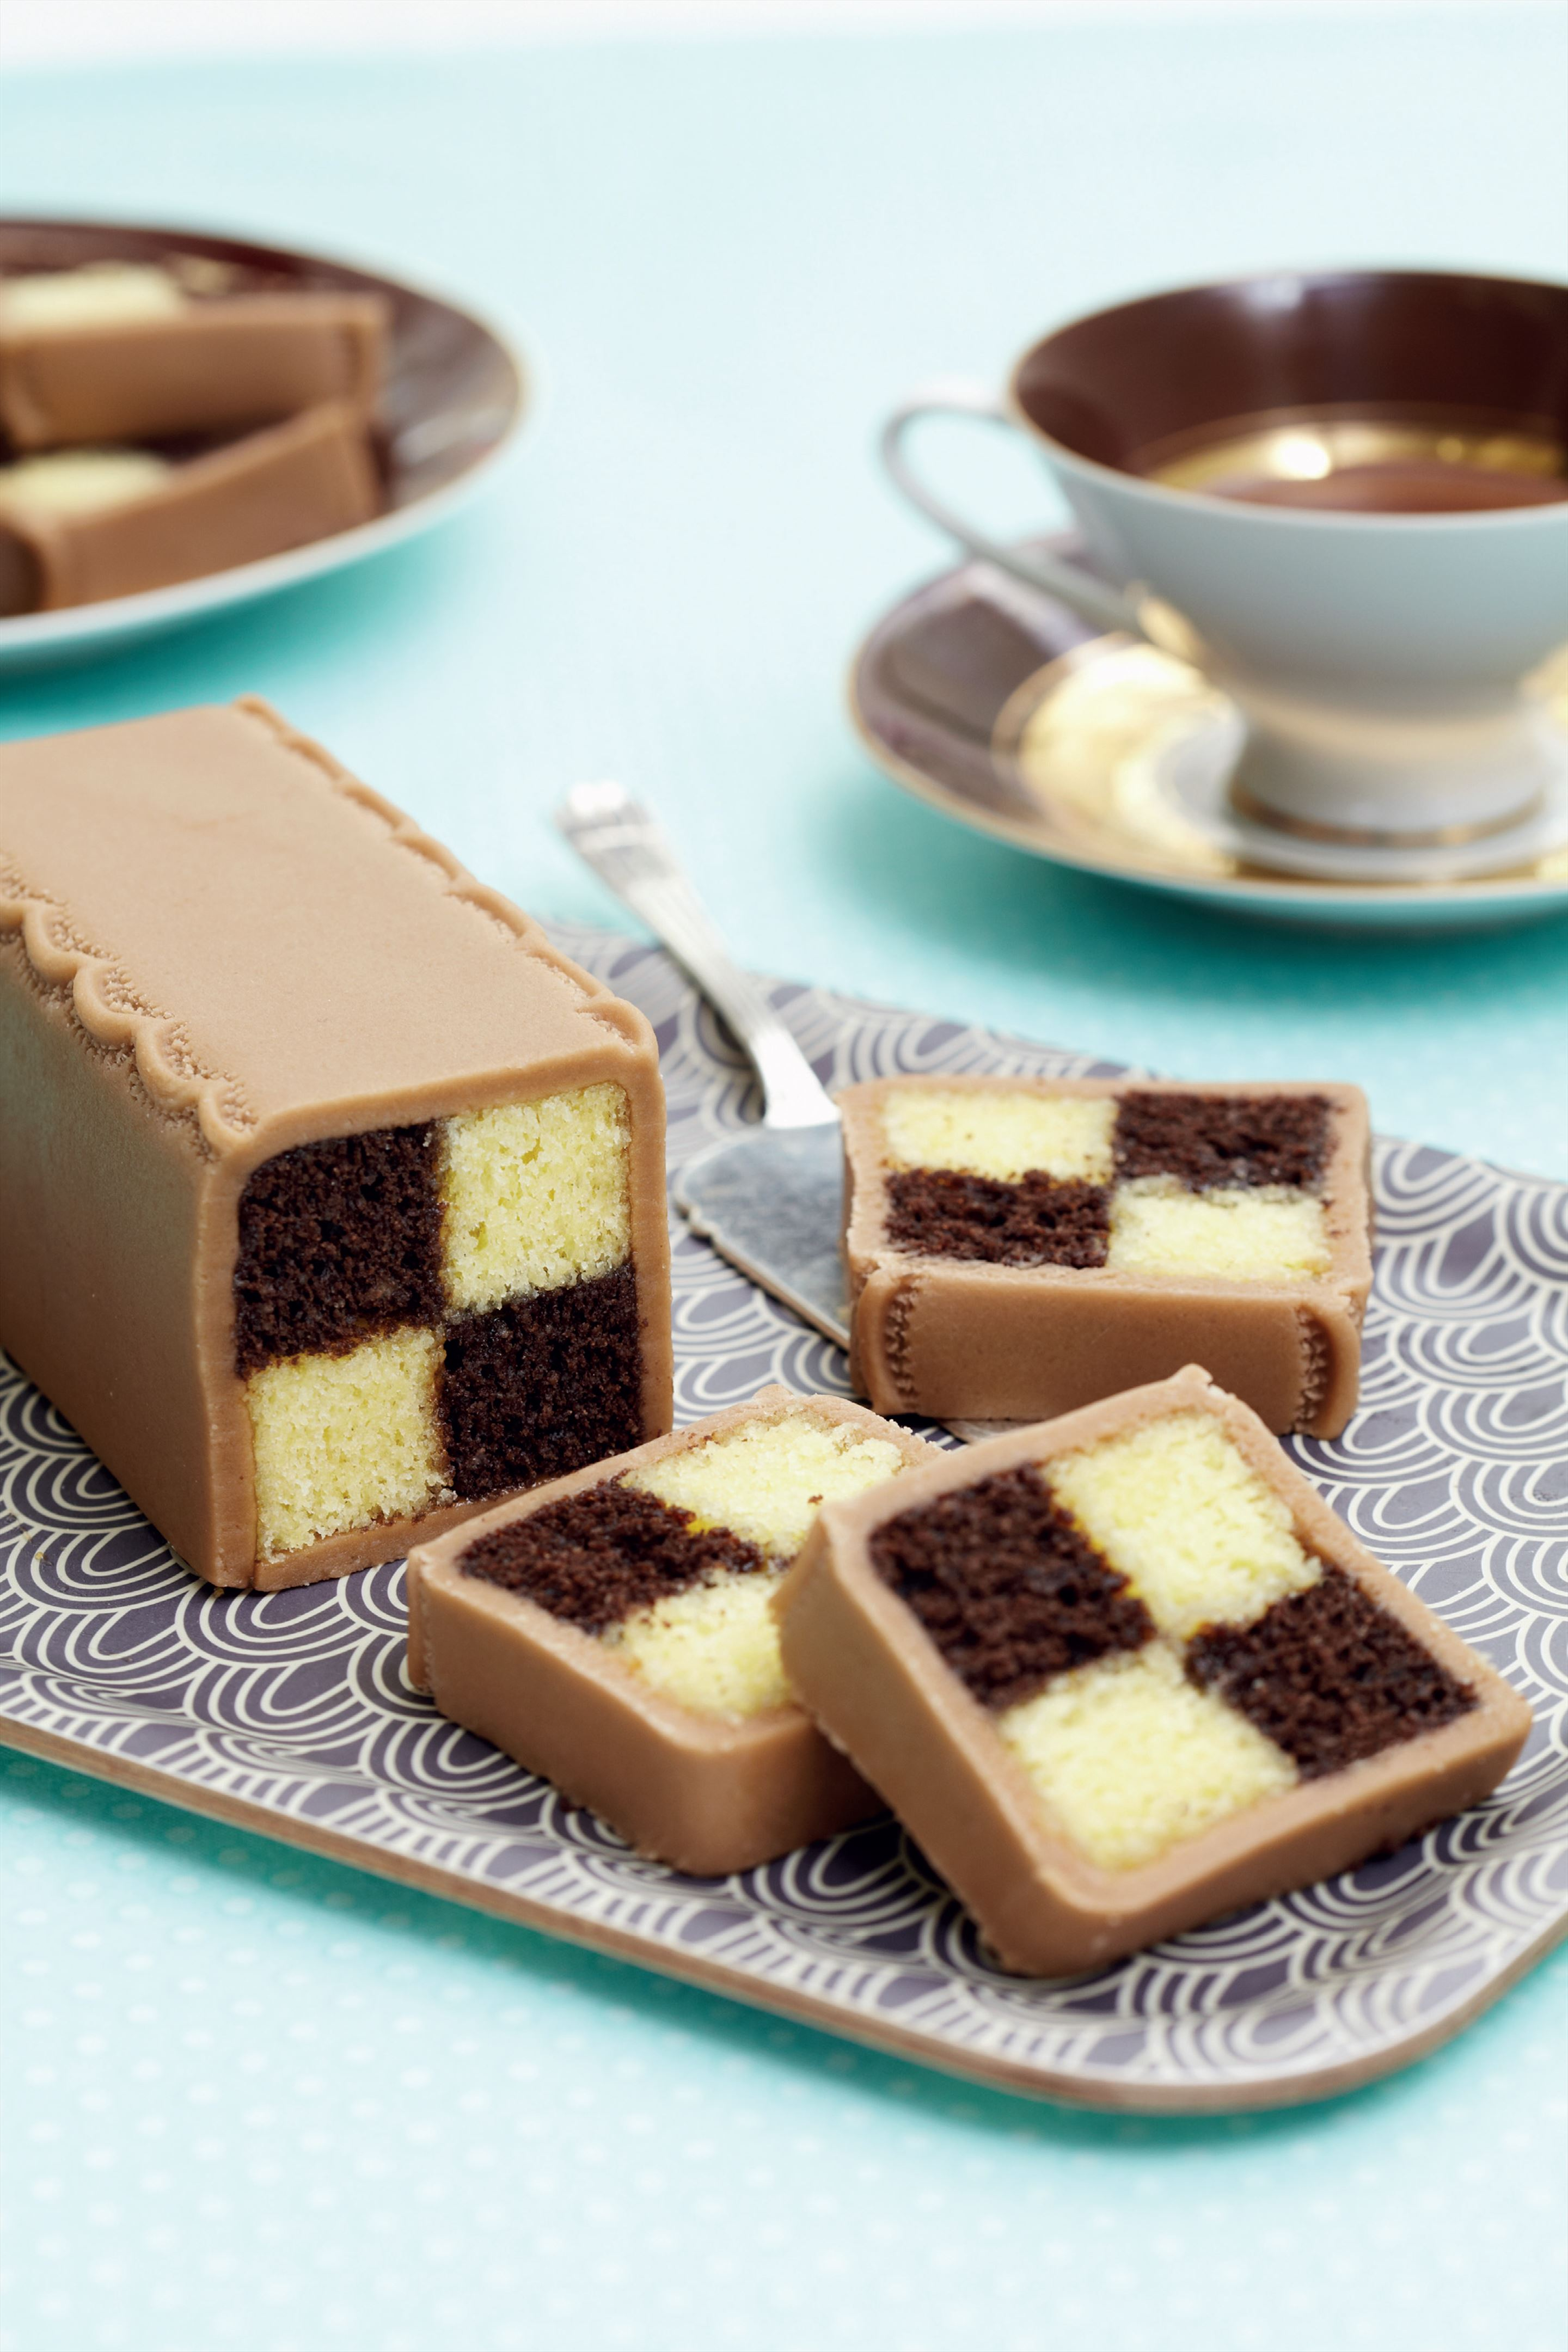 Chocolate battenberg cake